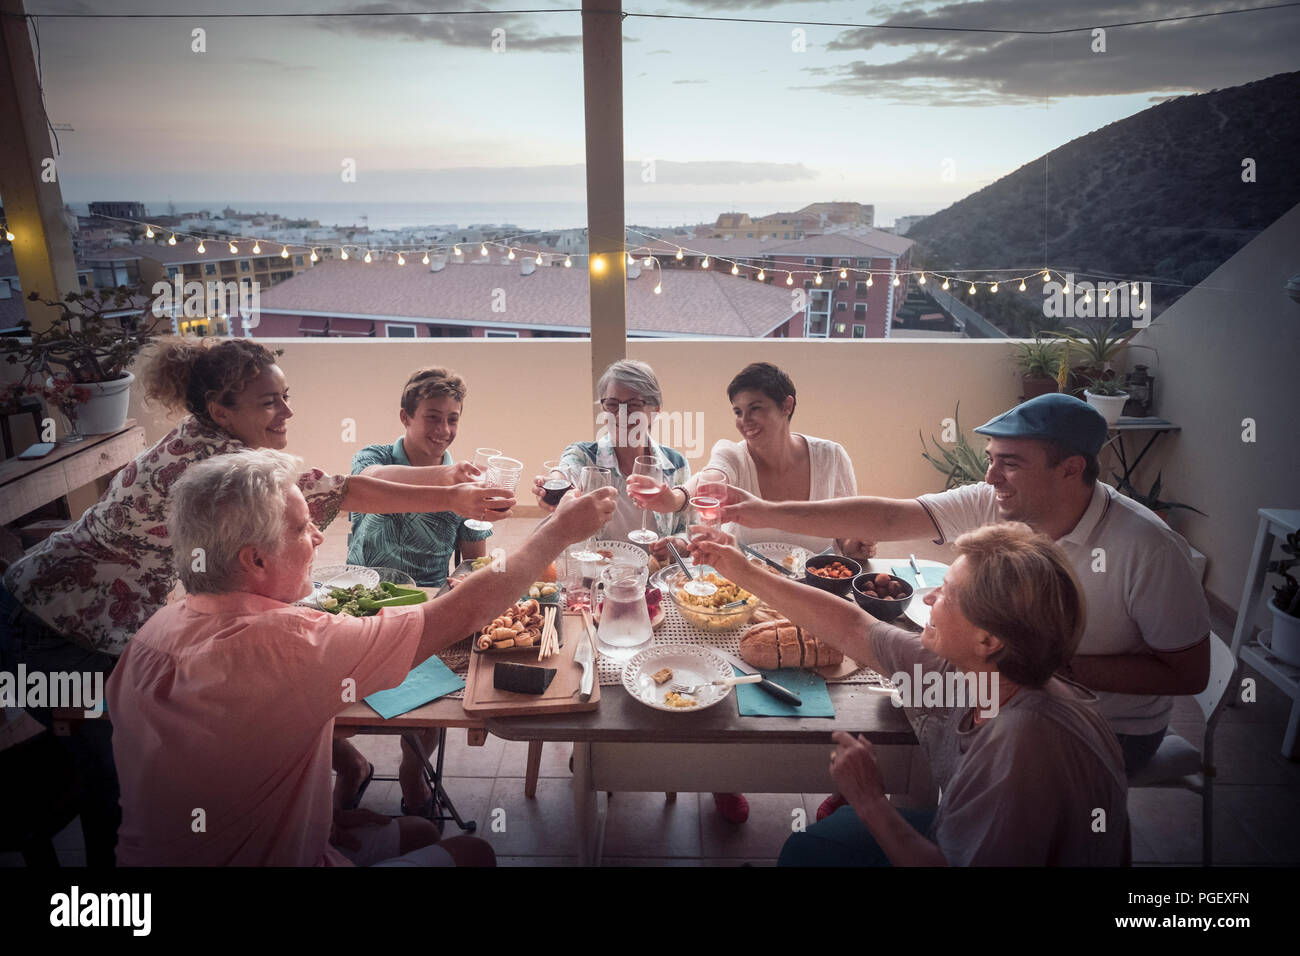 group of different ages people in friendship eat together a dinner event cheering with wine and enjoy the lifestyle. happiness and joyful for friends  Stock Photo